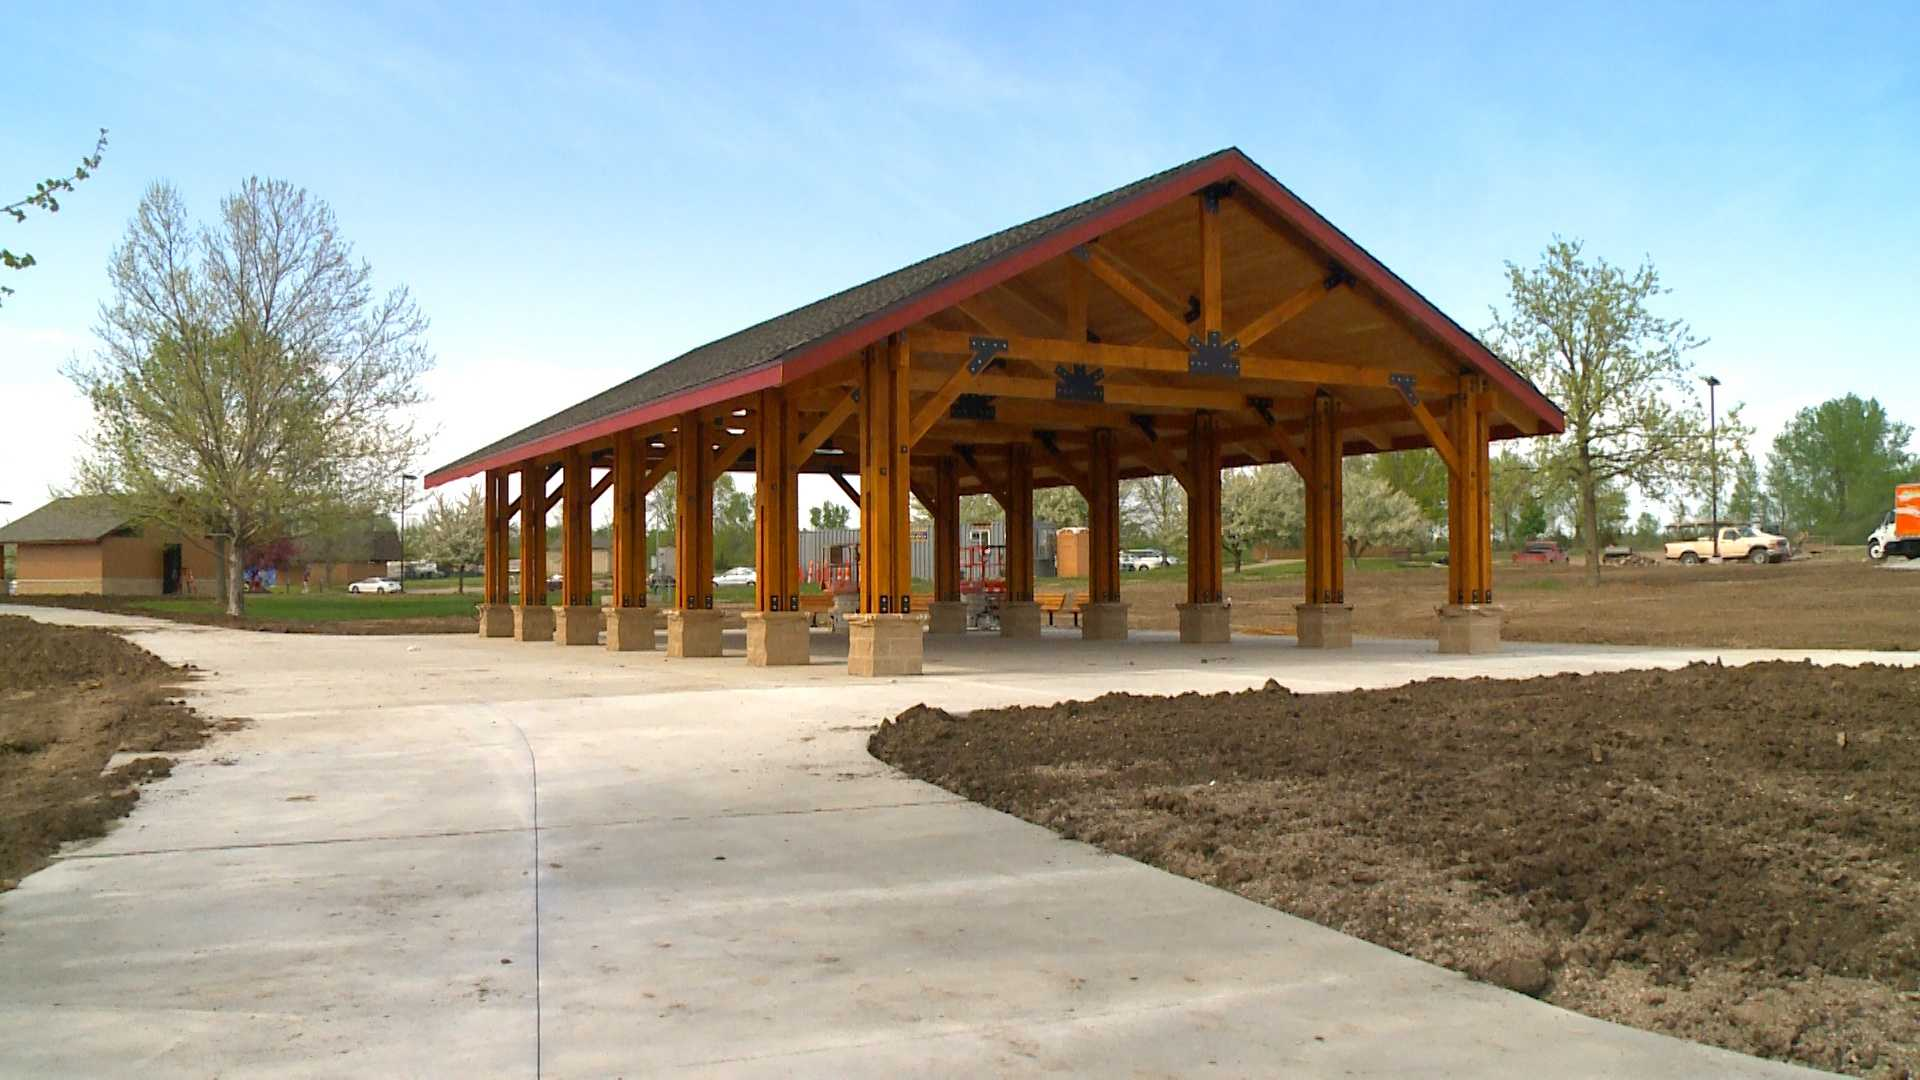 A collection of new timber-framed shelters are surprising visitors at Big Creek State Park.